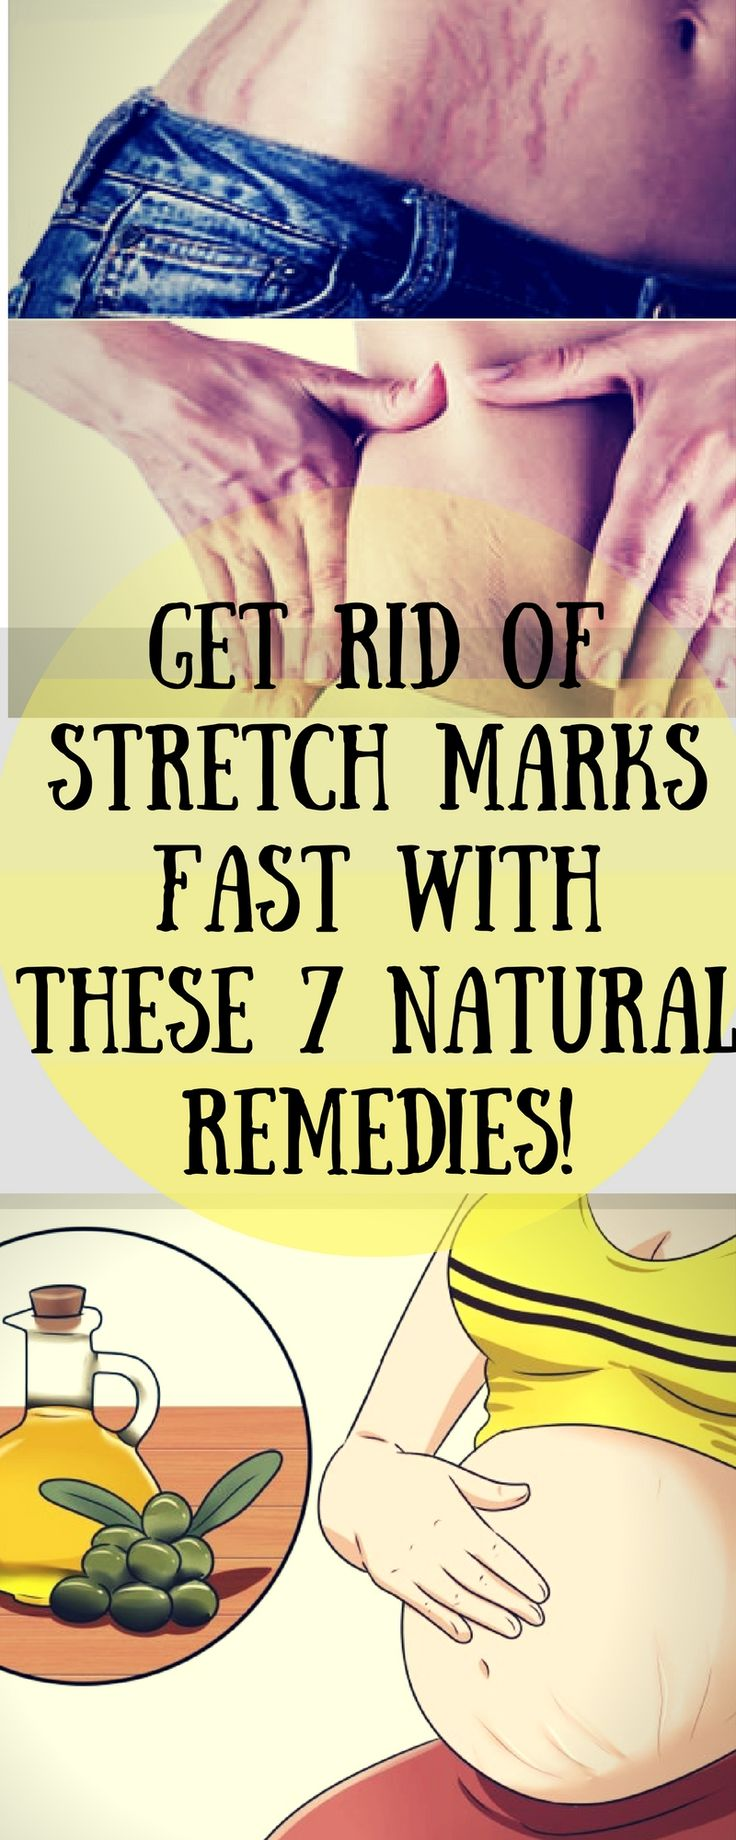 Get rid of stretch marks fast with these 7 natural